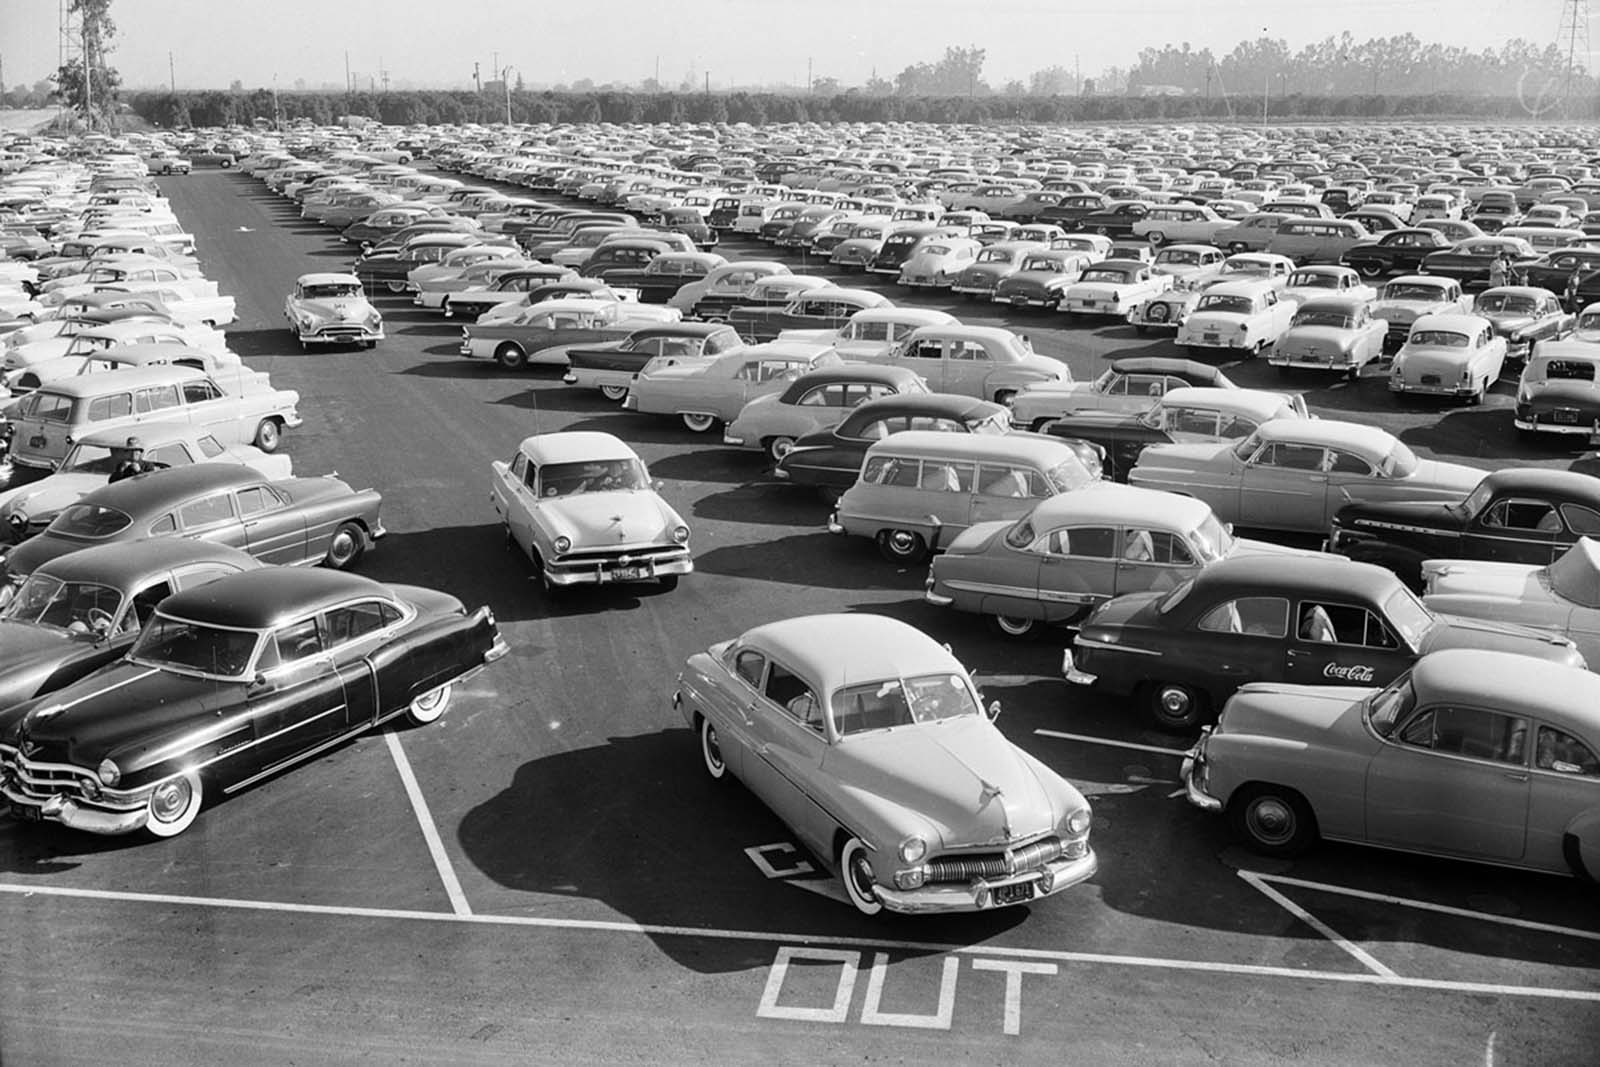 The Disneyland parking lot, full on opening day, July 17, 1955.